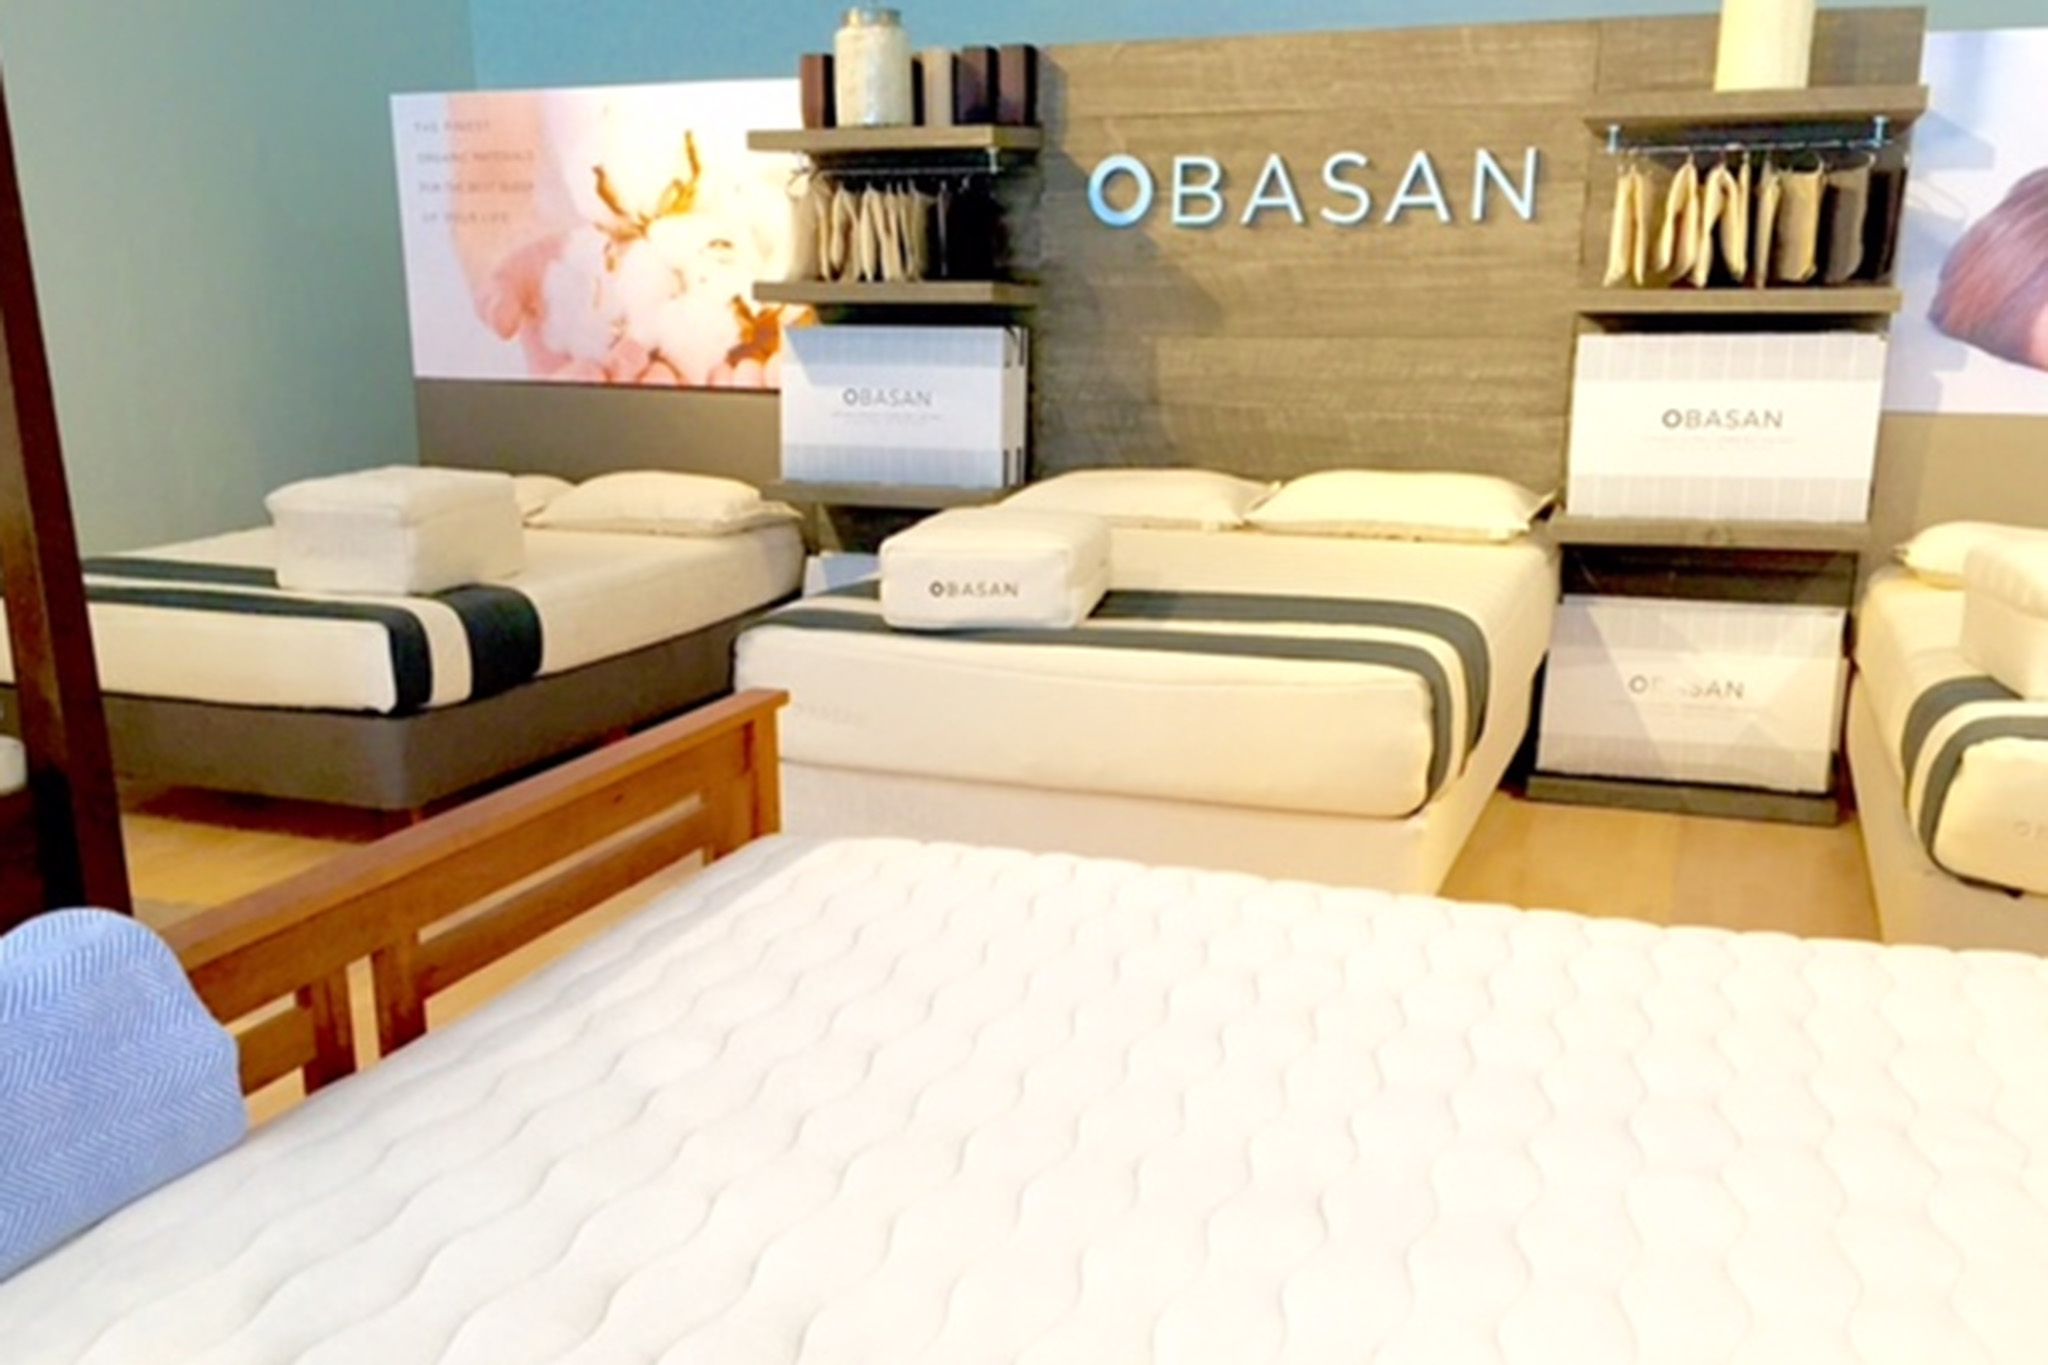 all at big people am shot be mattress for mattresses durable heavy fit guys a reasons reviews of sapira few high screen foams in will density good they are best the meaning even used is